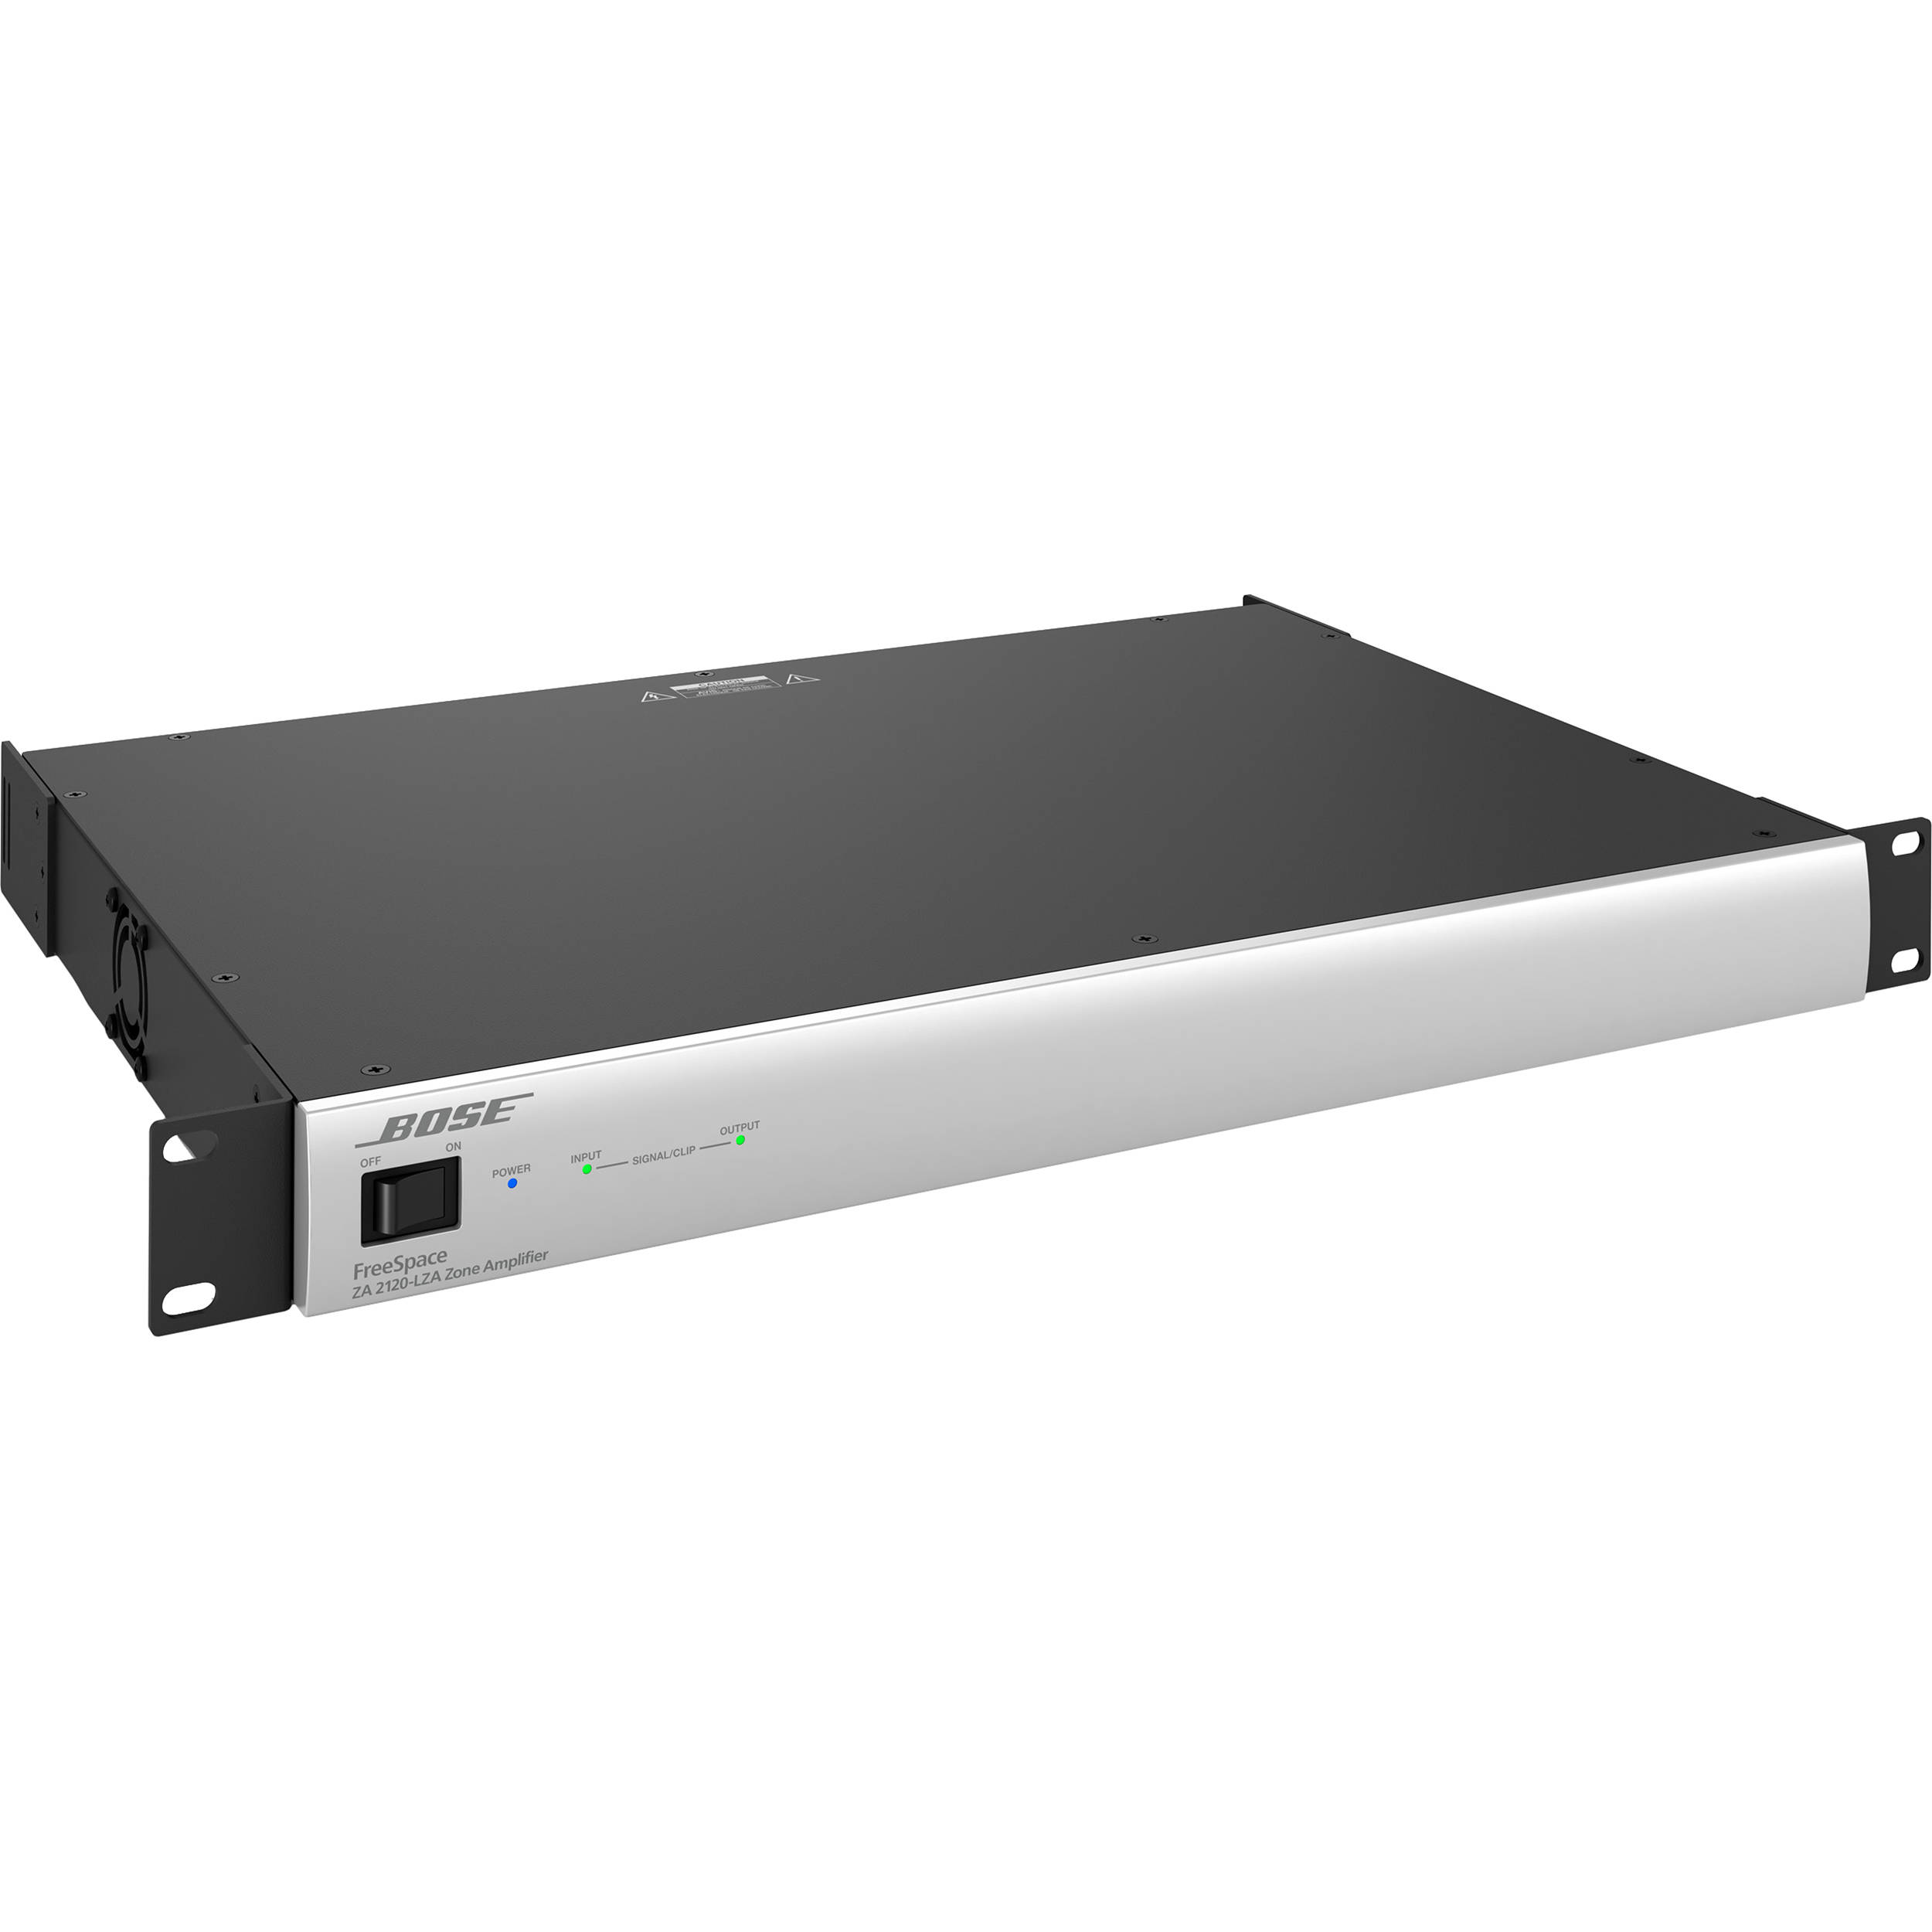 Power Amplifier Za 2120 : bose professional freespace za 2120 lza zone amplifier ~ Vivirlamusica.com Haus und Dekorationen